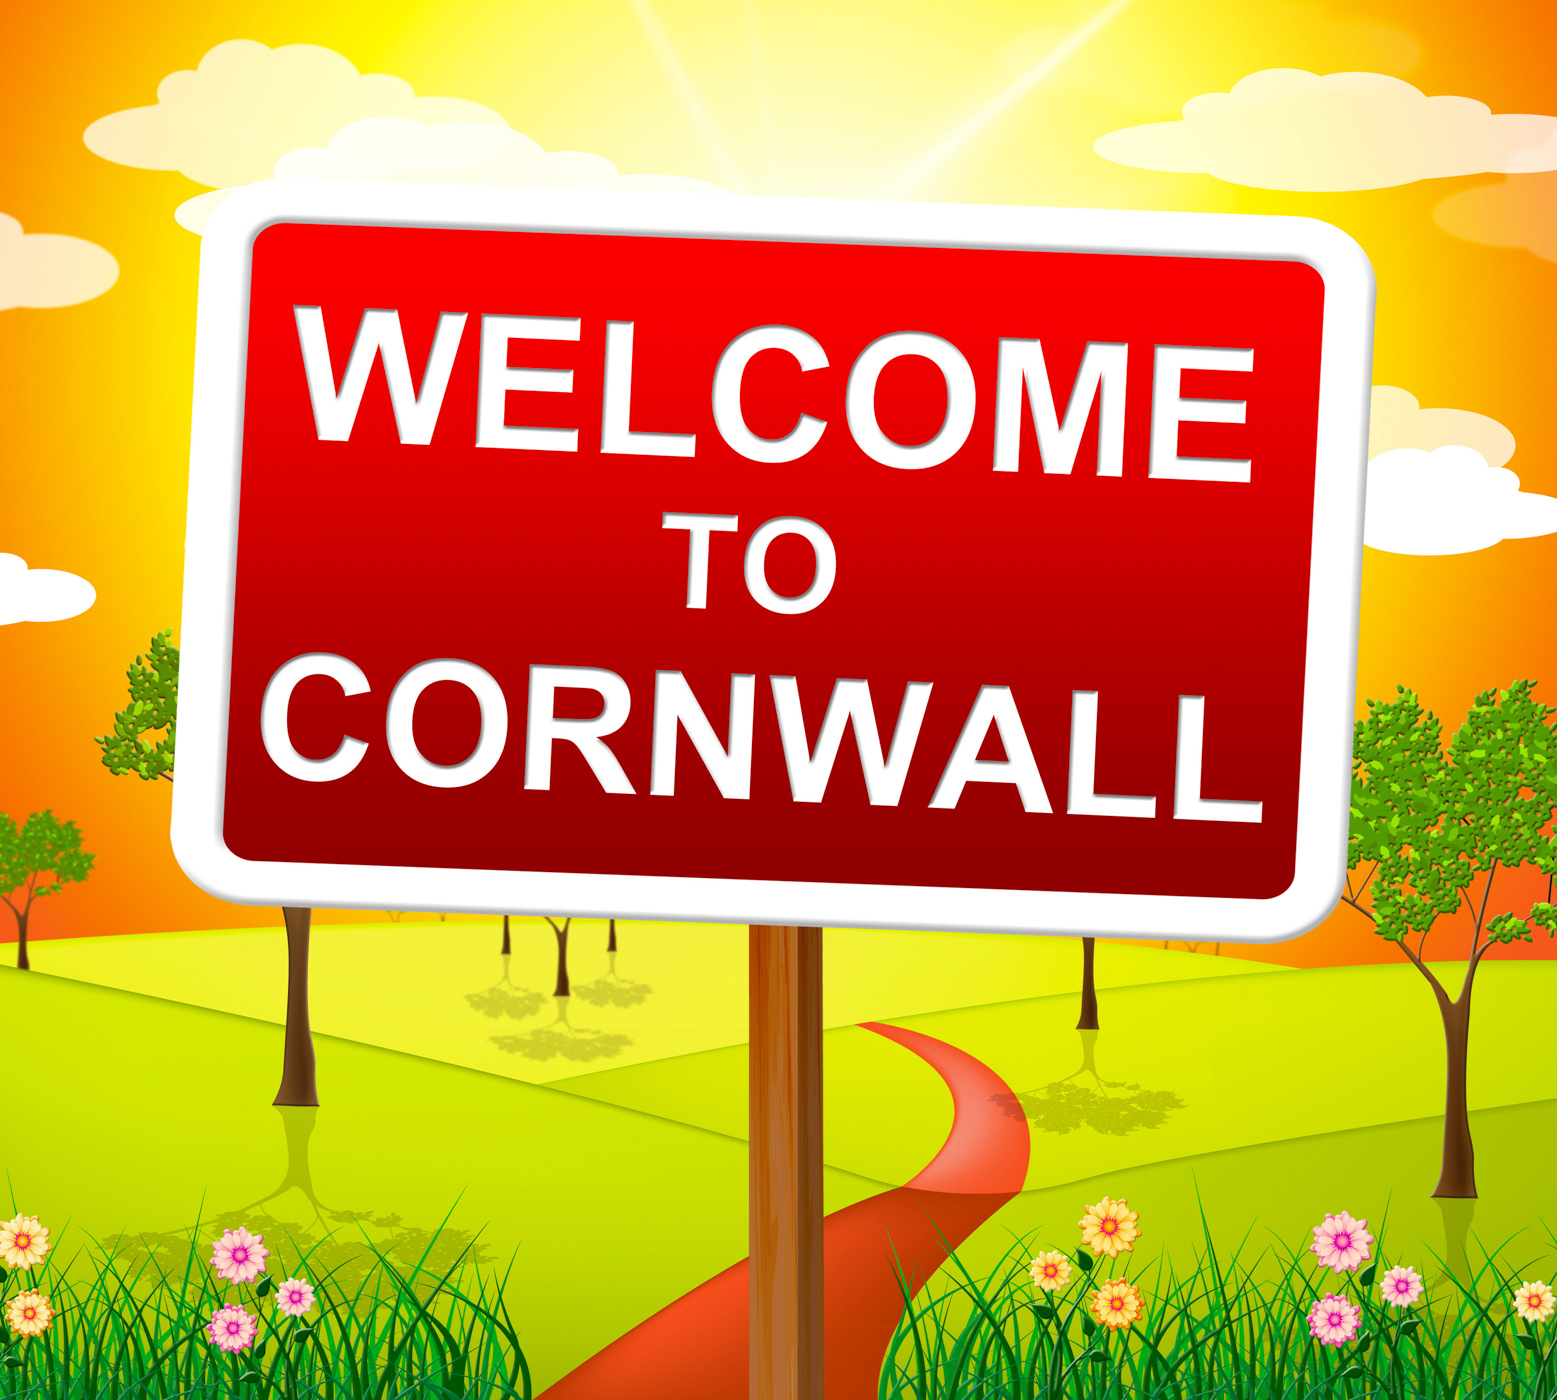 Welcome to cornwall shows united kingdom and britain photo